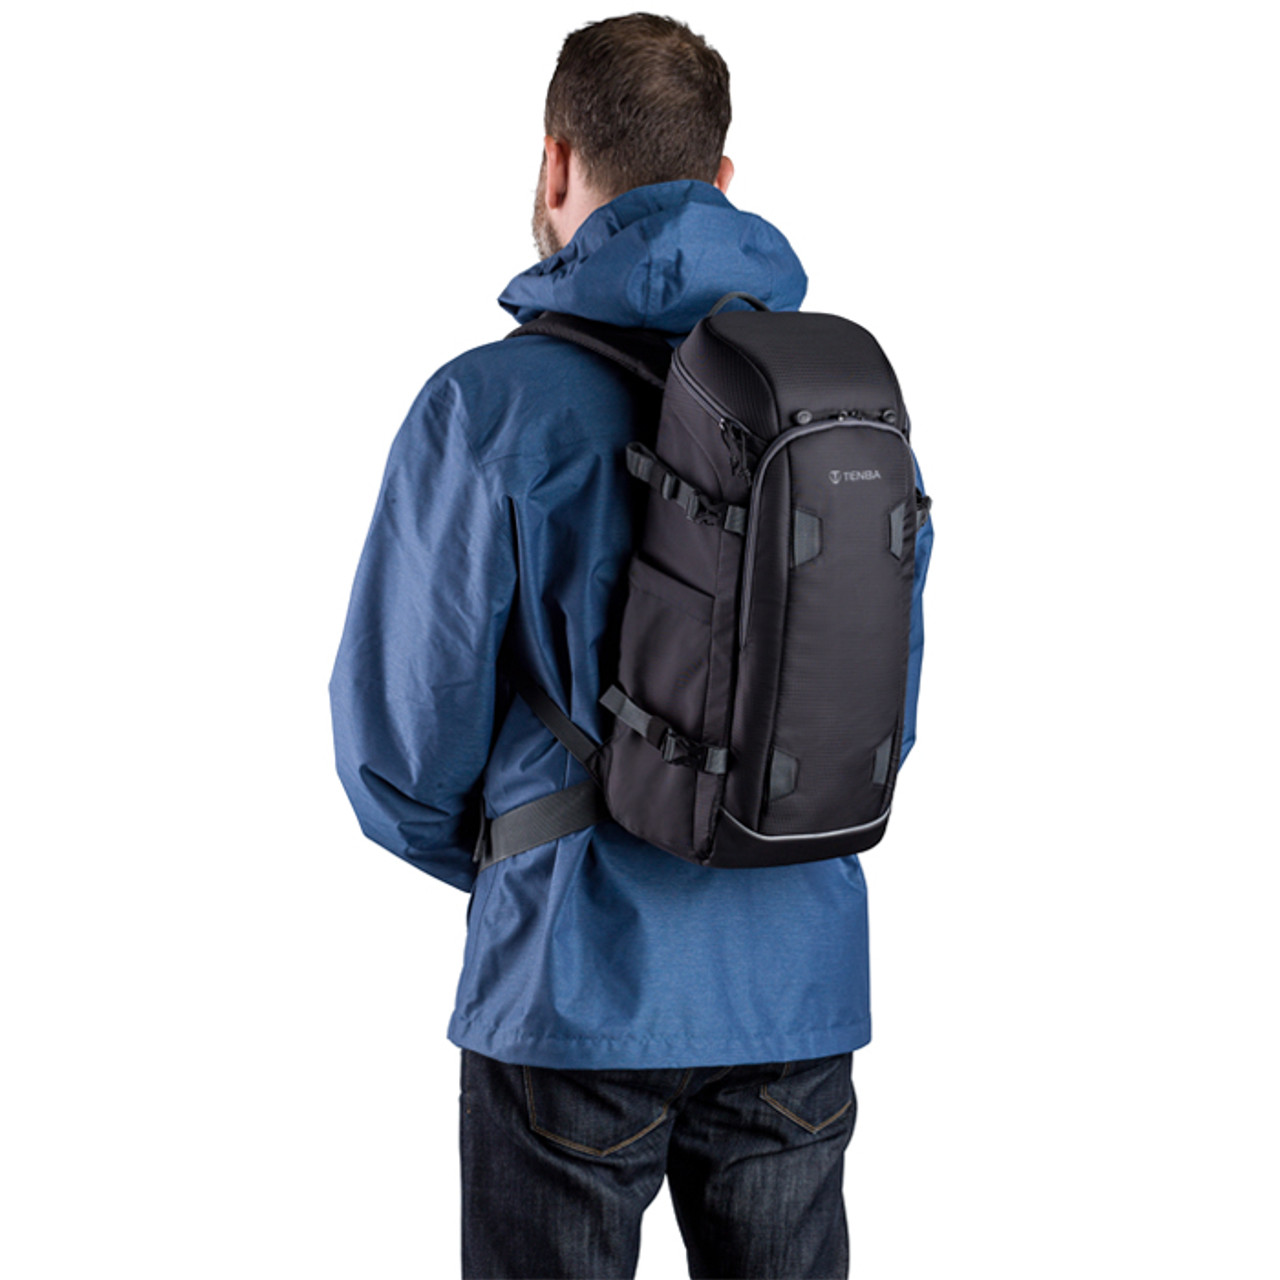 TENBA SOLSTICE BACKPACK 12L